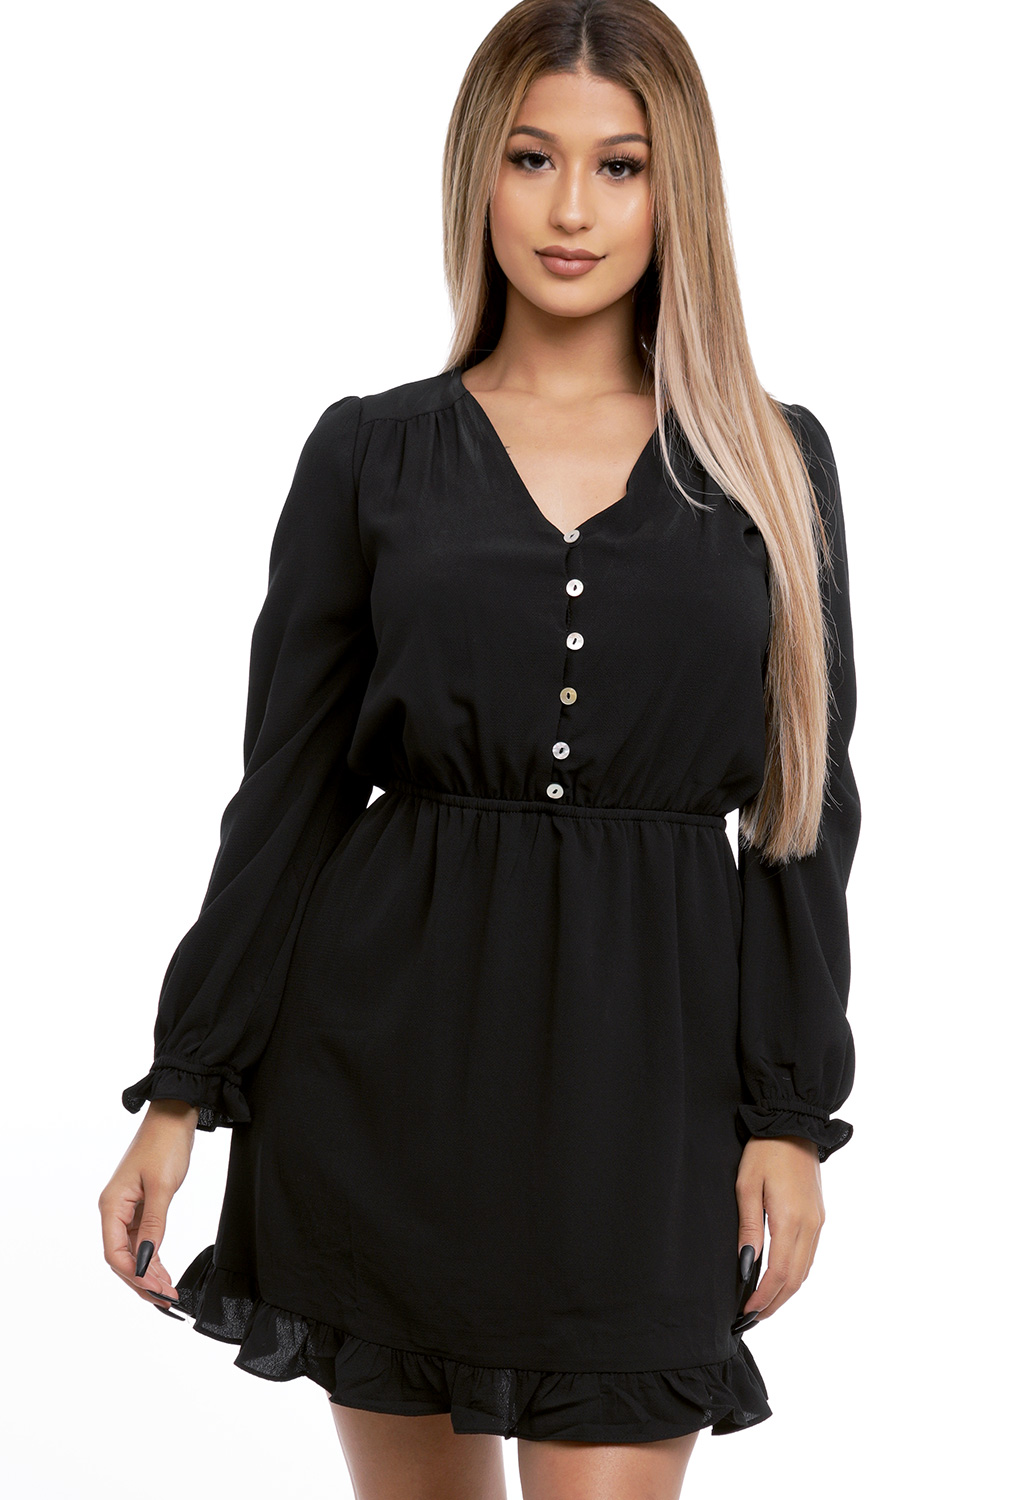 Half Button Up Mini Dress